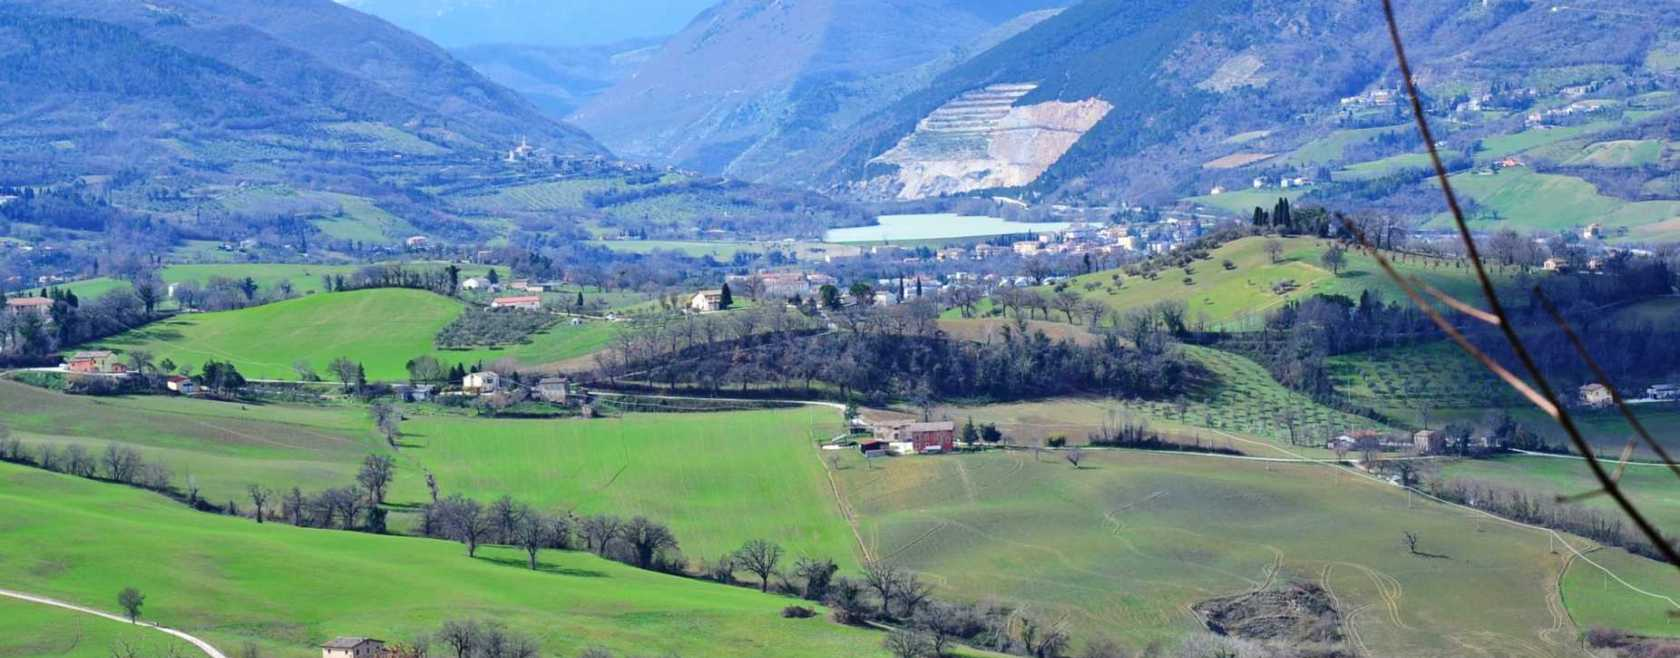 Land for sale Camporotondo di Fiastrone, le Marche Italy